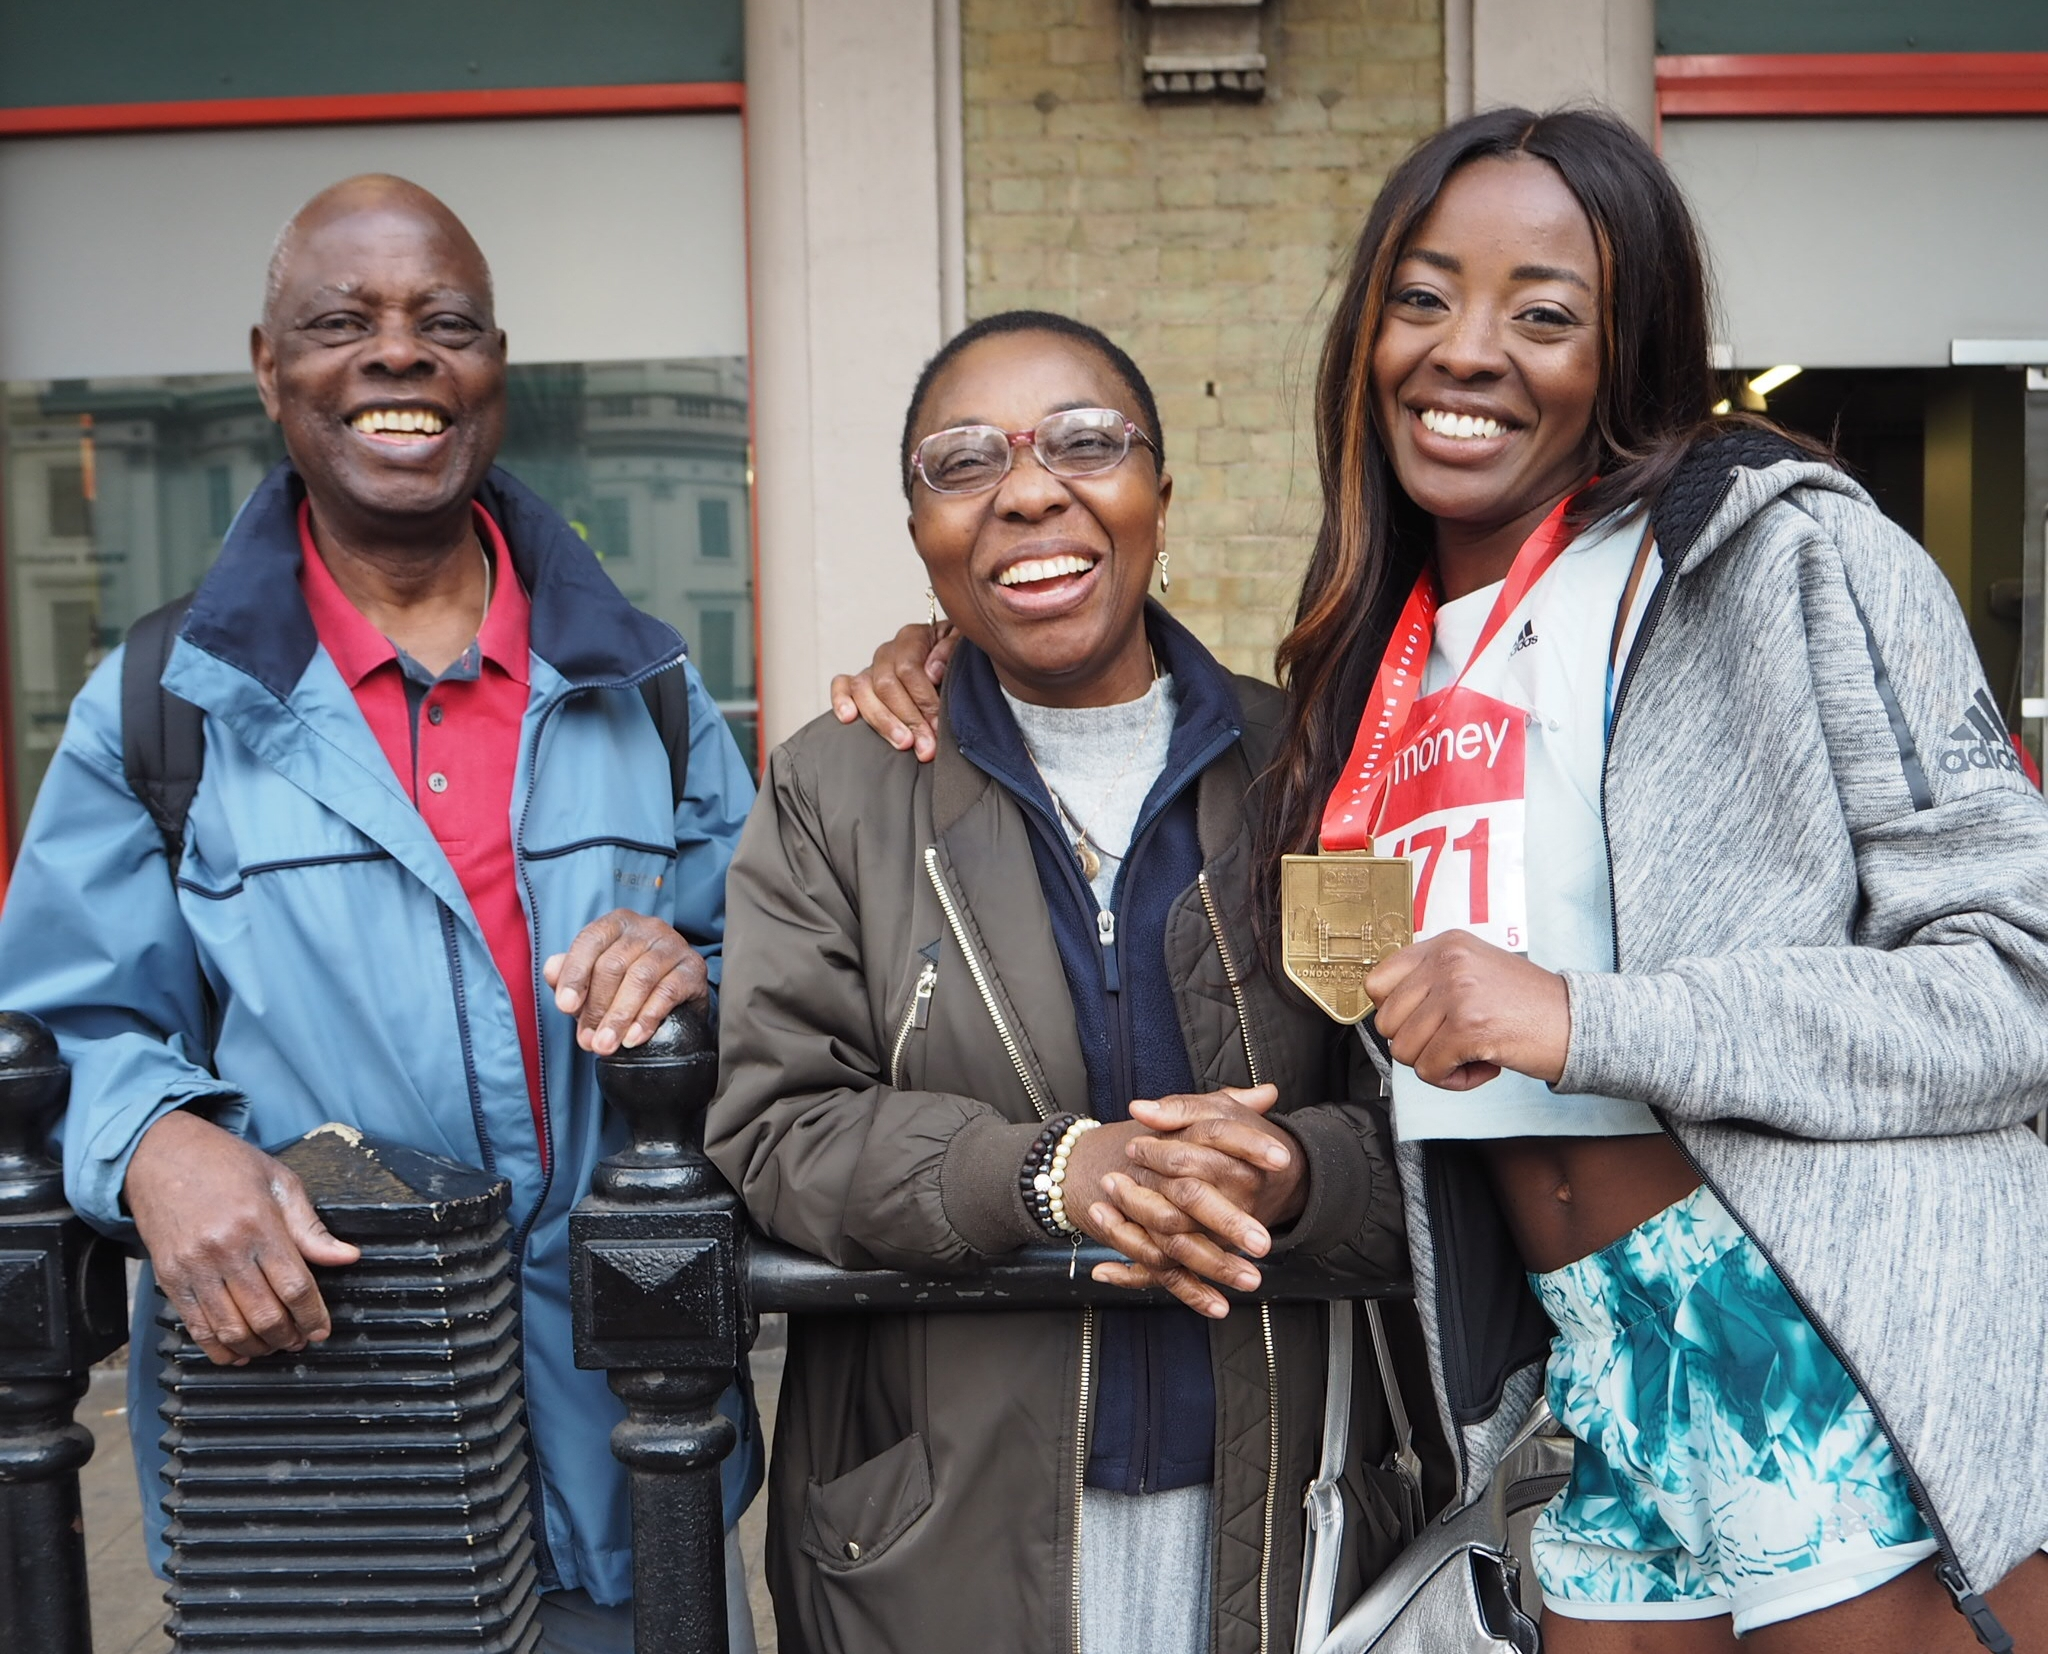 London Marathon Family and Friend support